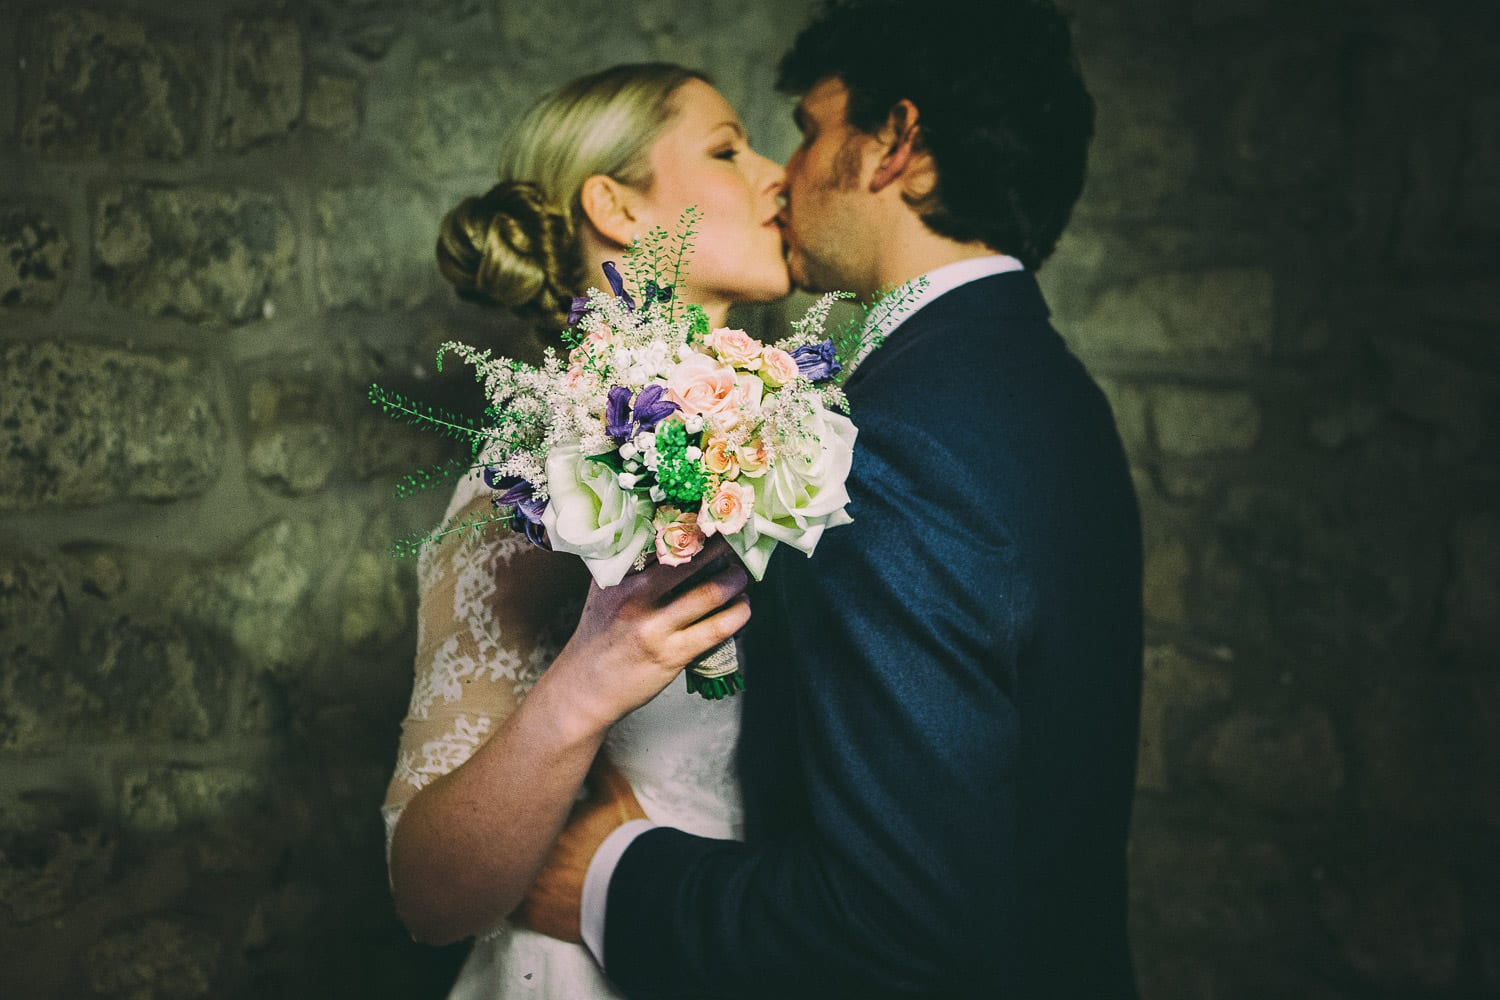 the bride and groom kiss in the church entrance